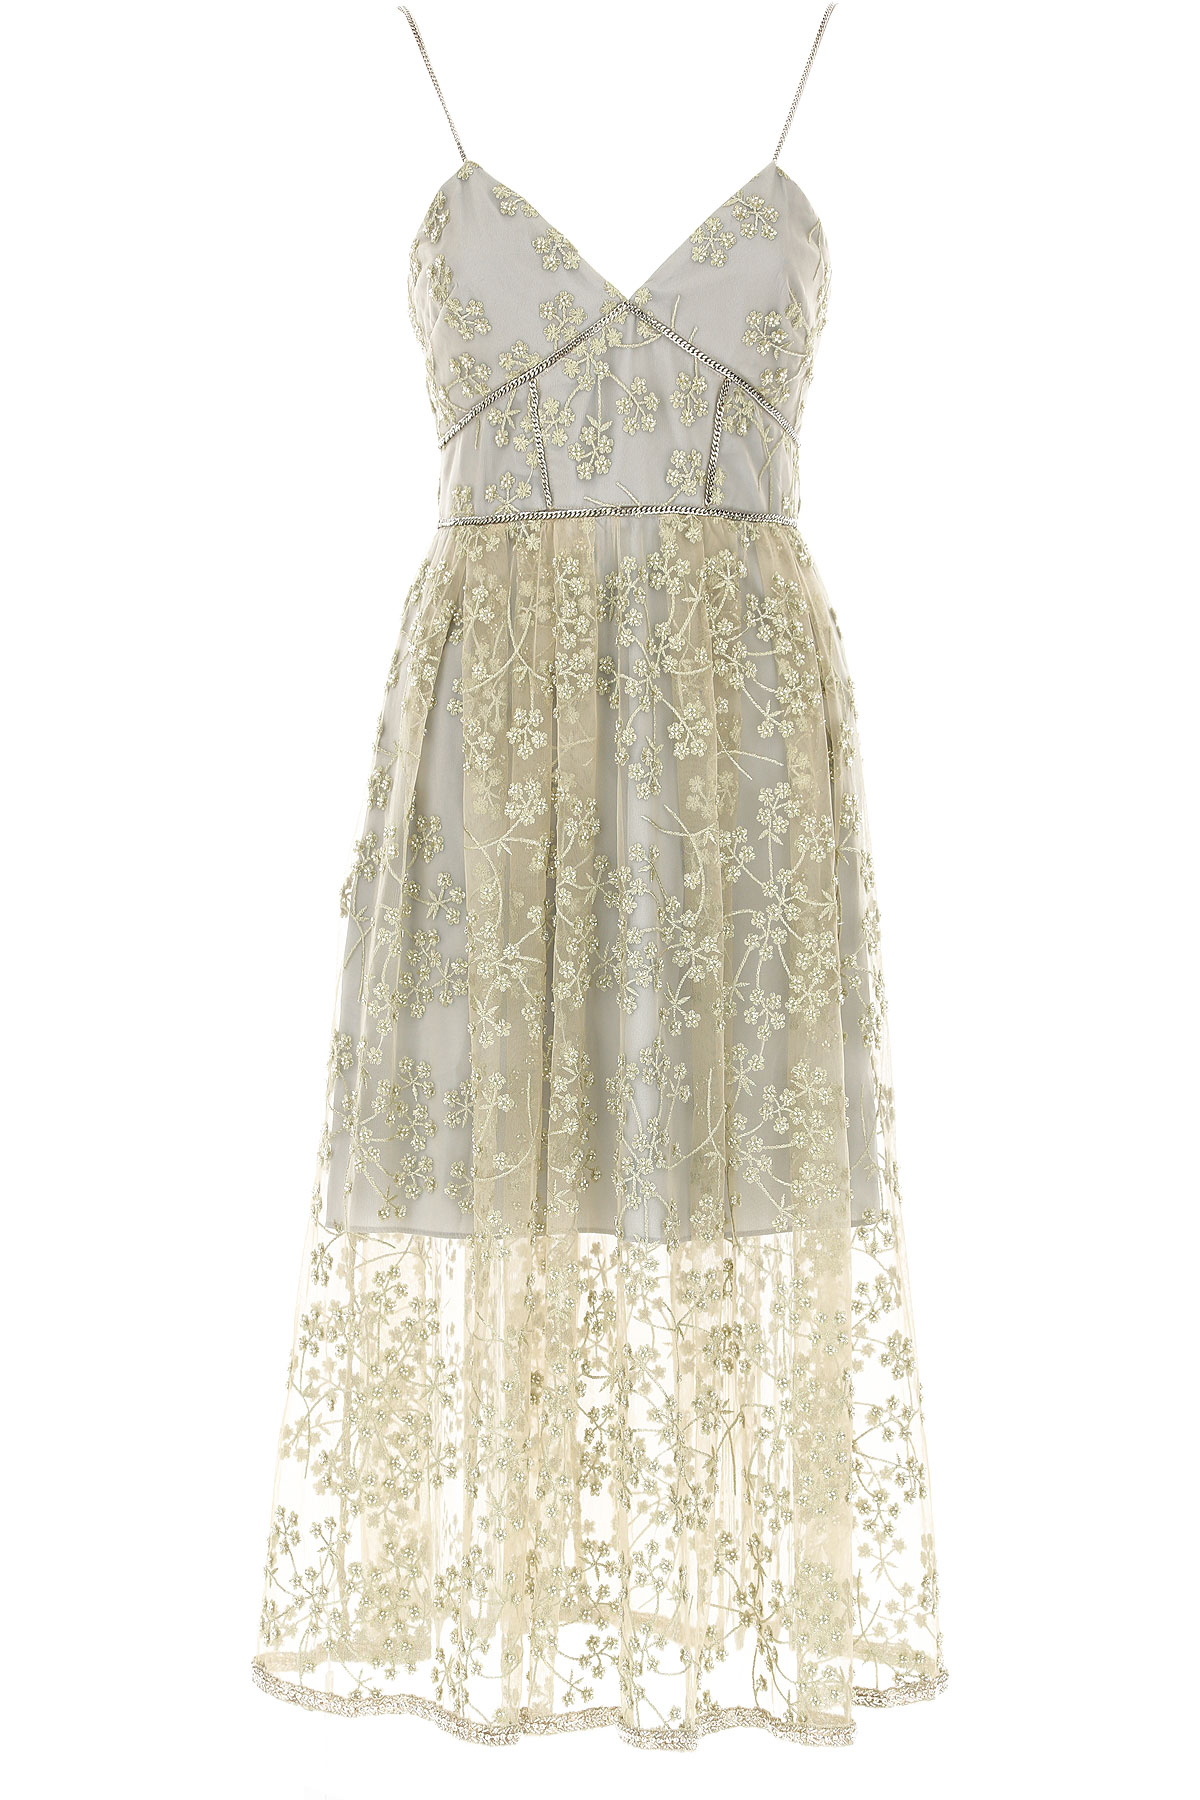 Image of Self-portrait Dress for Women, Evening Cocktail Party, Gold, polyestere, 2017, UK 6 - US 4 - EU 38 UK 10 - US 8 - EU 42 UK 12 - US 10 - EU 44